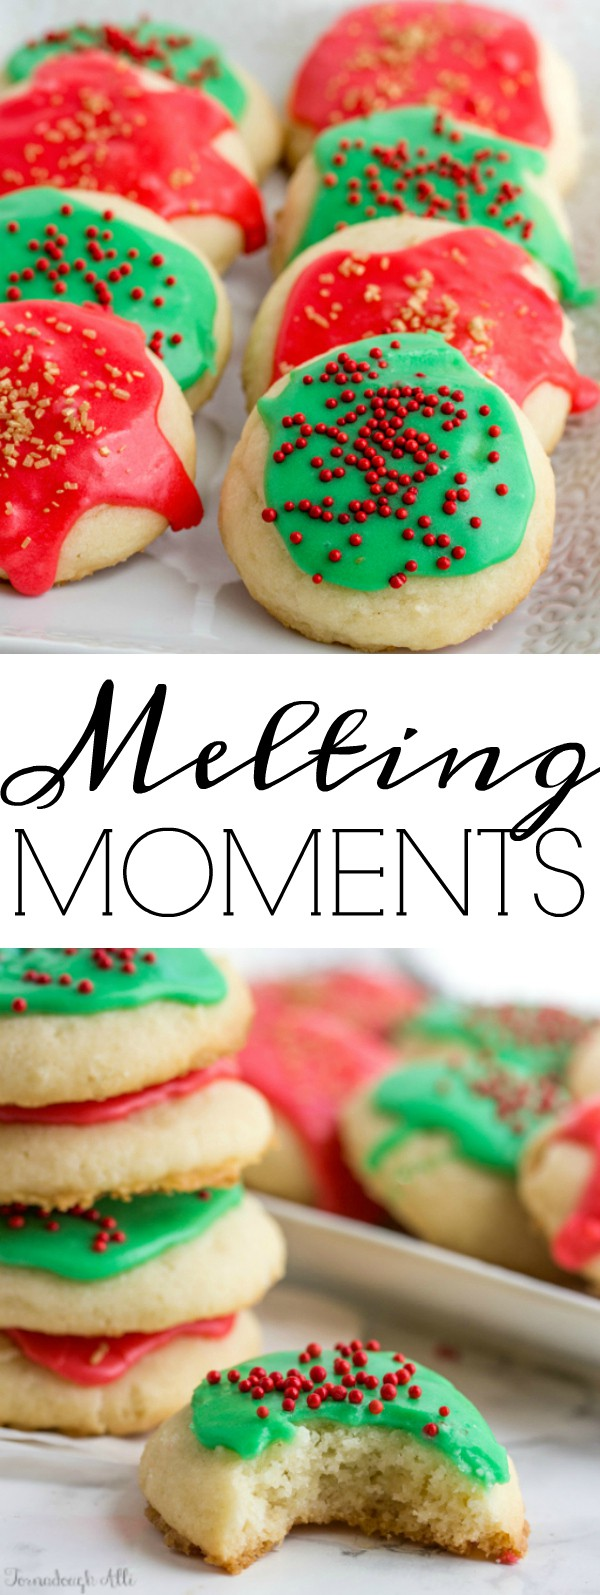 Delicious and utterly soft cookies these Melting Moments literally melt in your mouth with each and every bite. #cookies #holiday #christmas #baking #holidaybaking #delicious